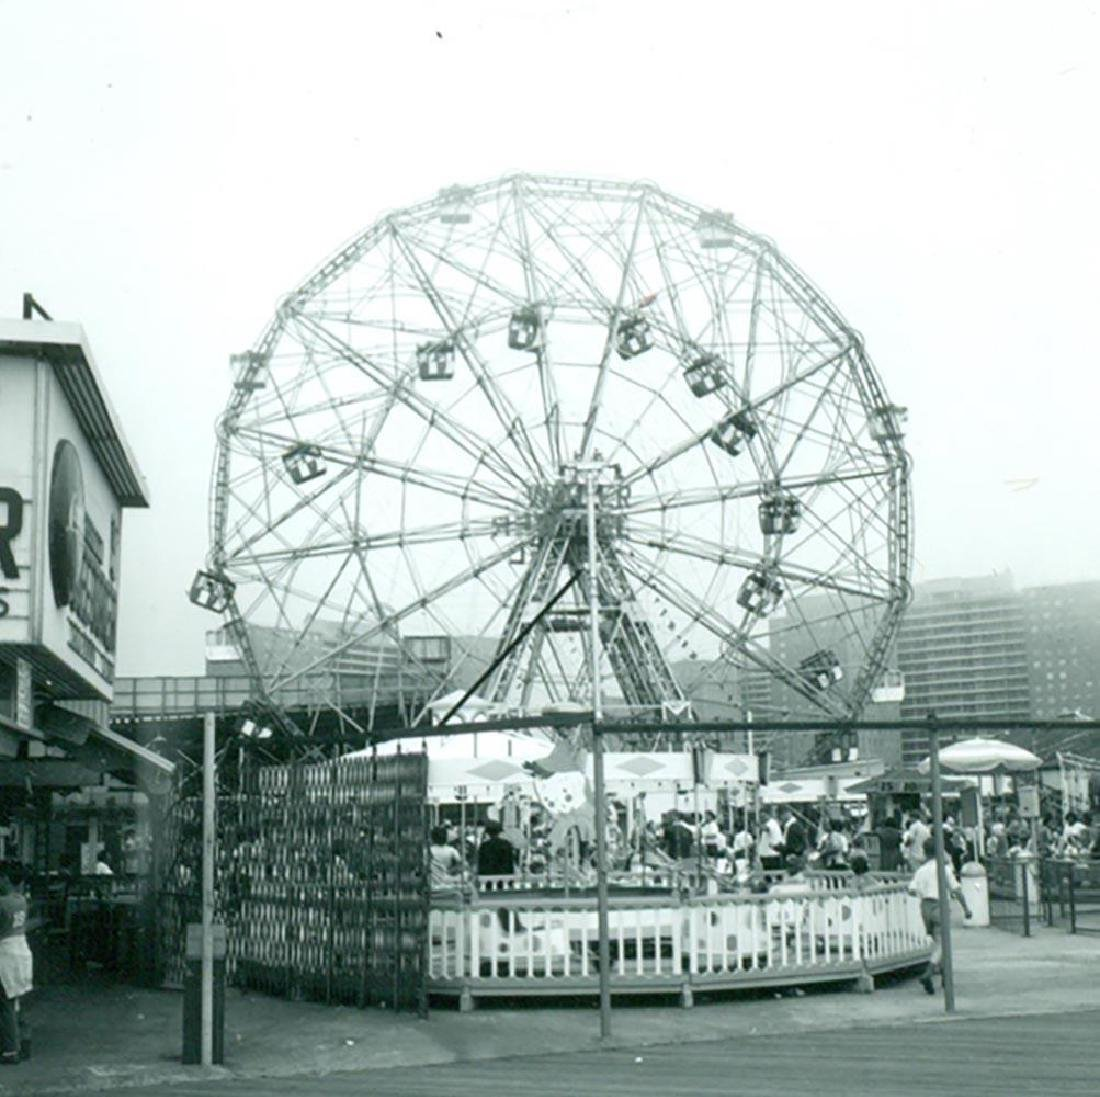 1962 Snapshot Wonder Wheel Ferris Wheel Coney Island